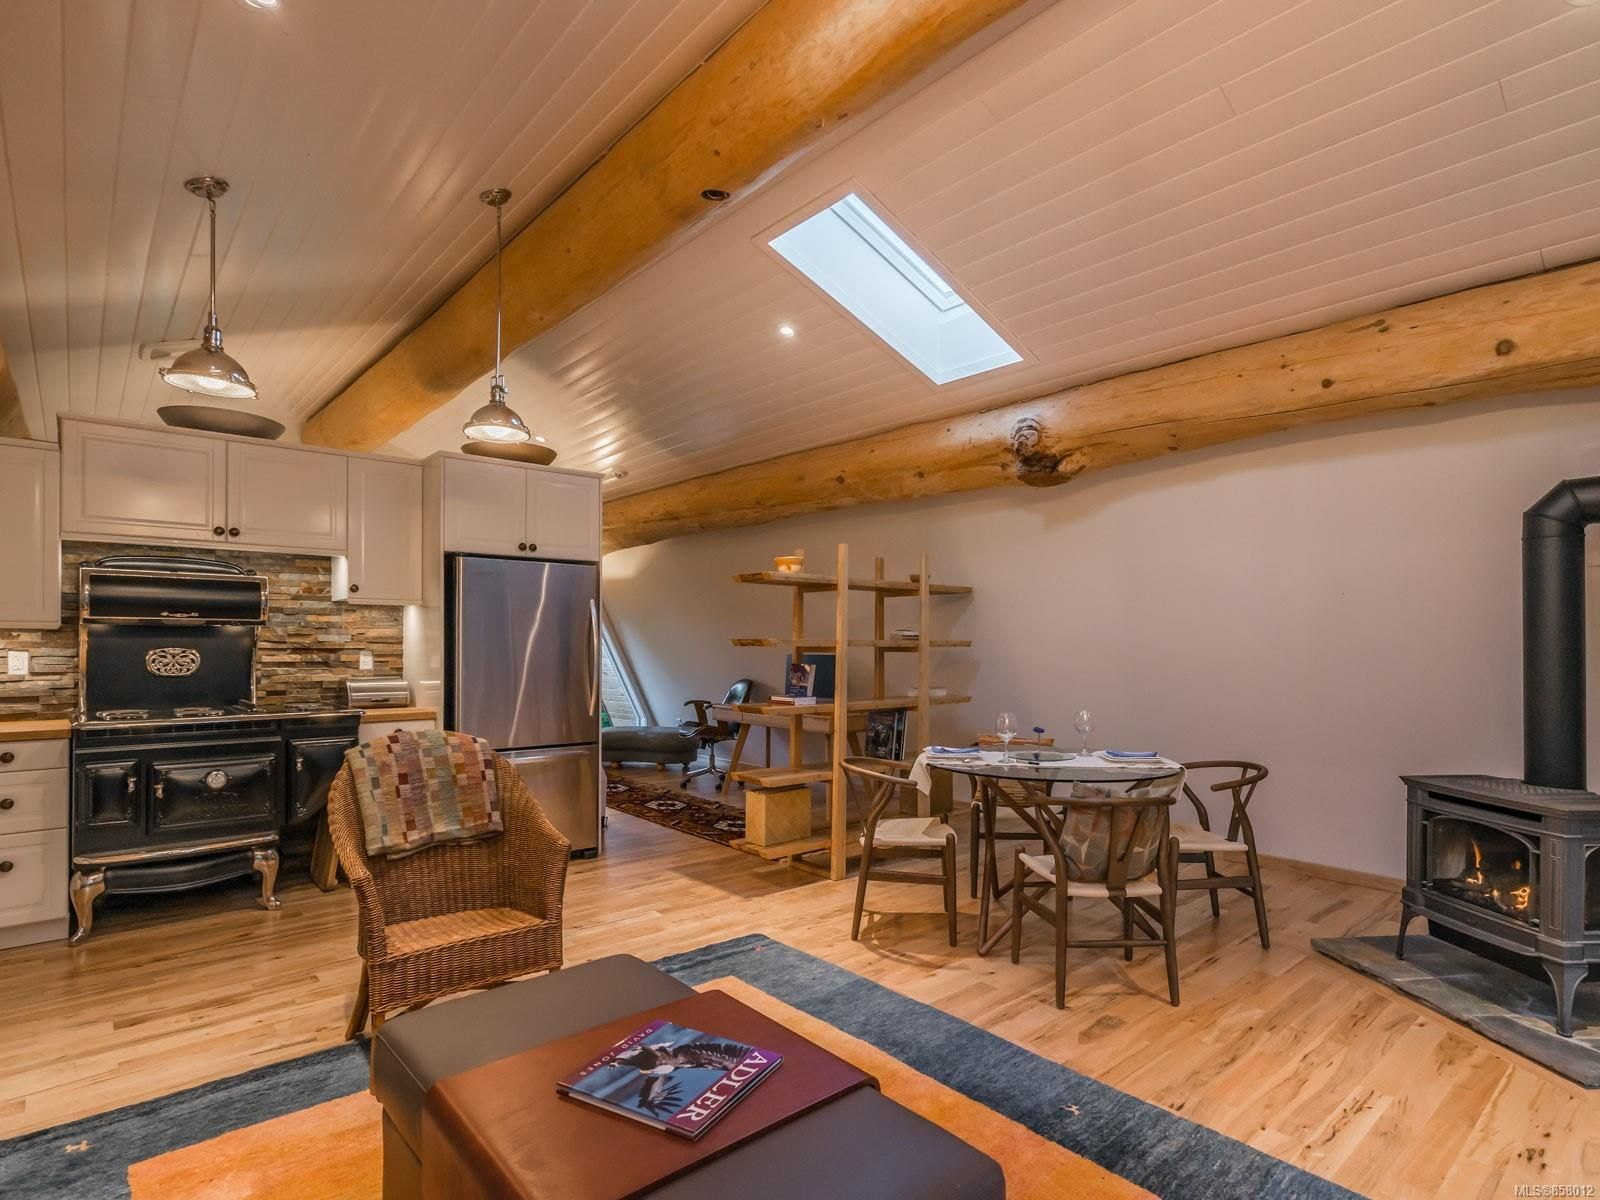 Photo 53: Photos: 6030 MINE Rd in : NI Port McNeill House for sale (North Island)  : MLS®# 858012